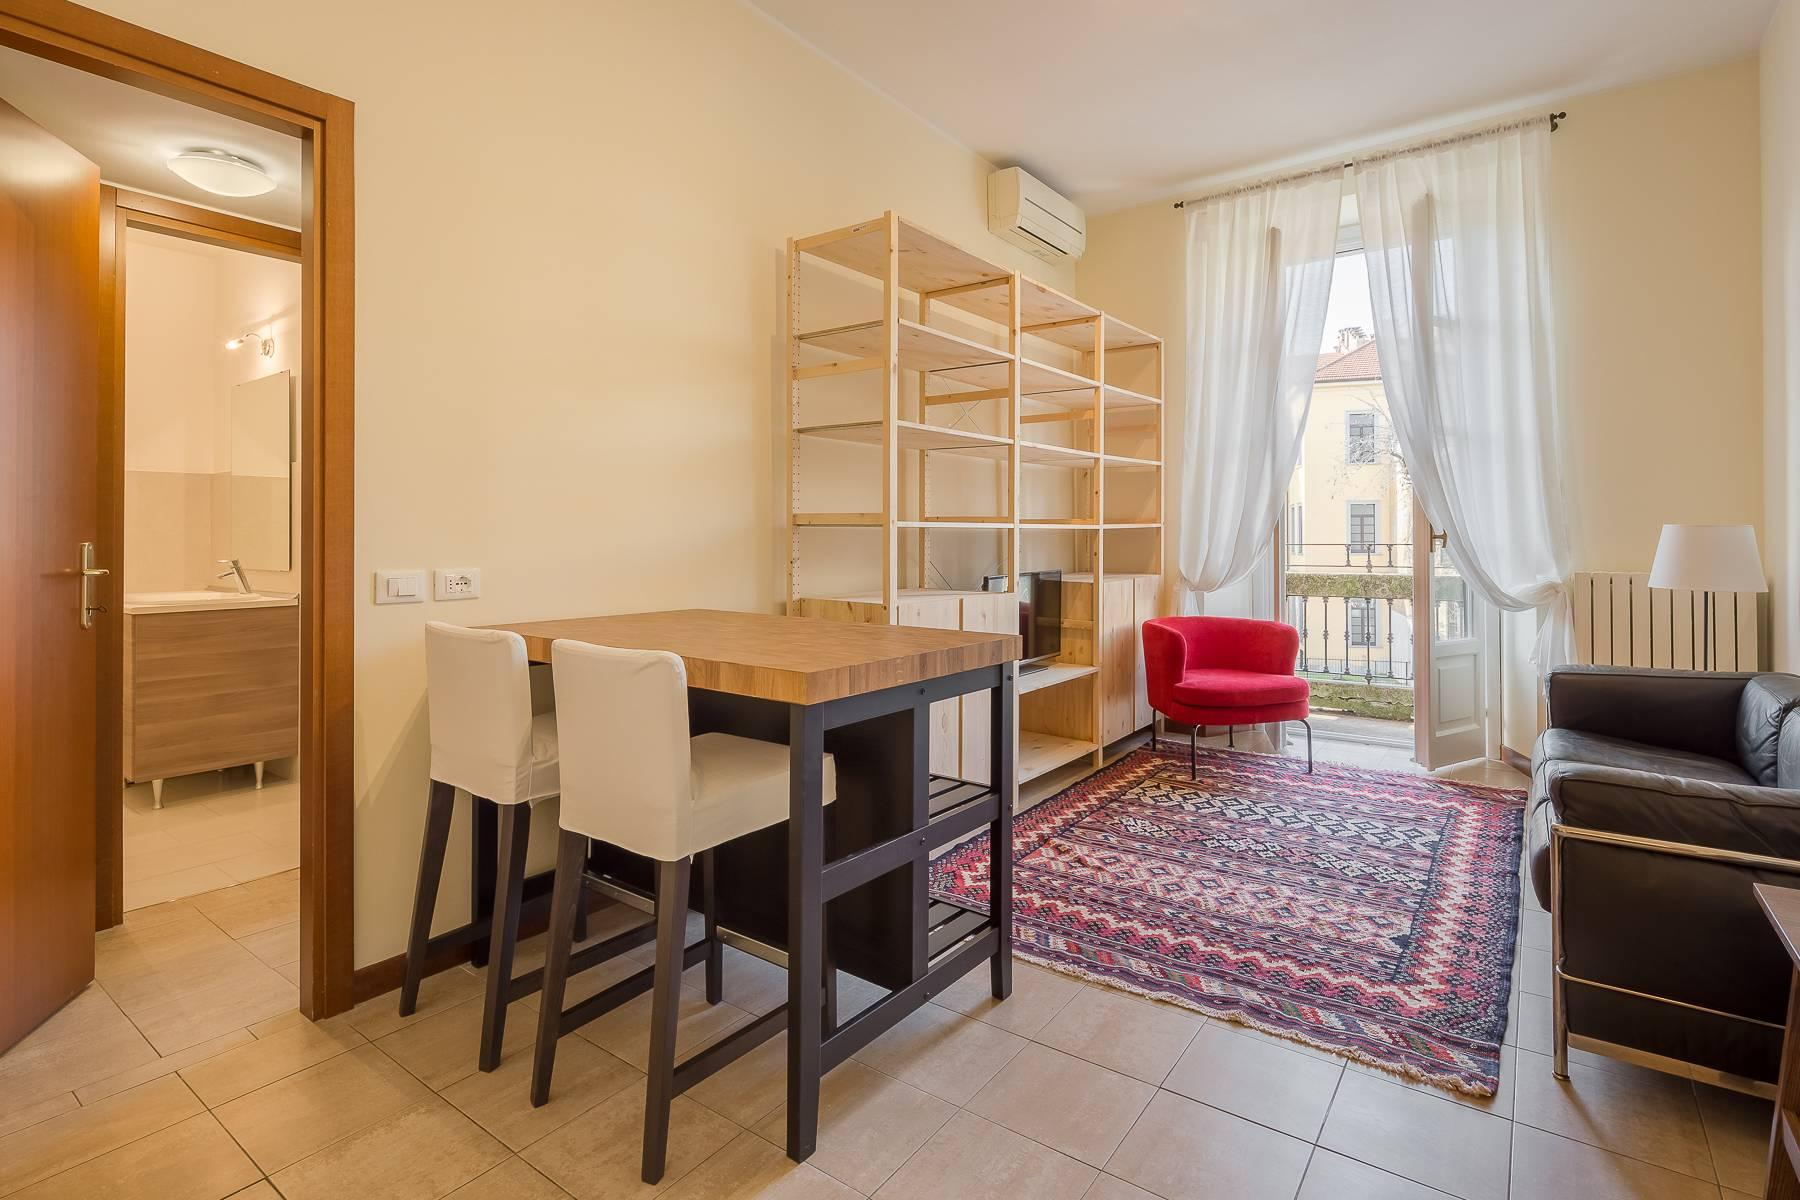 Delightful furnished apartment for rent in Via San Marco - 2